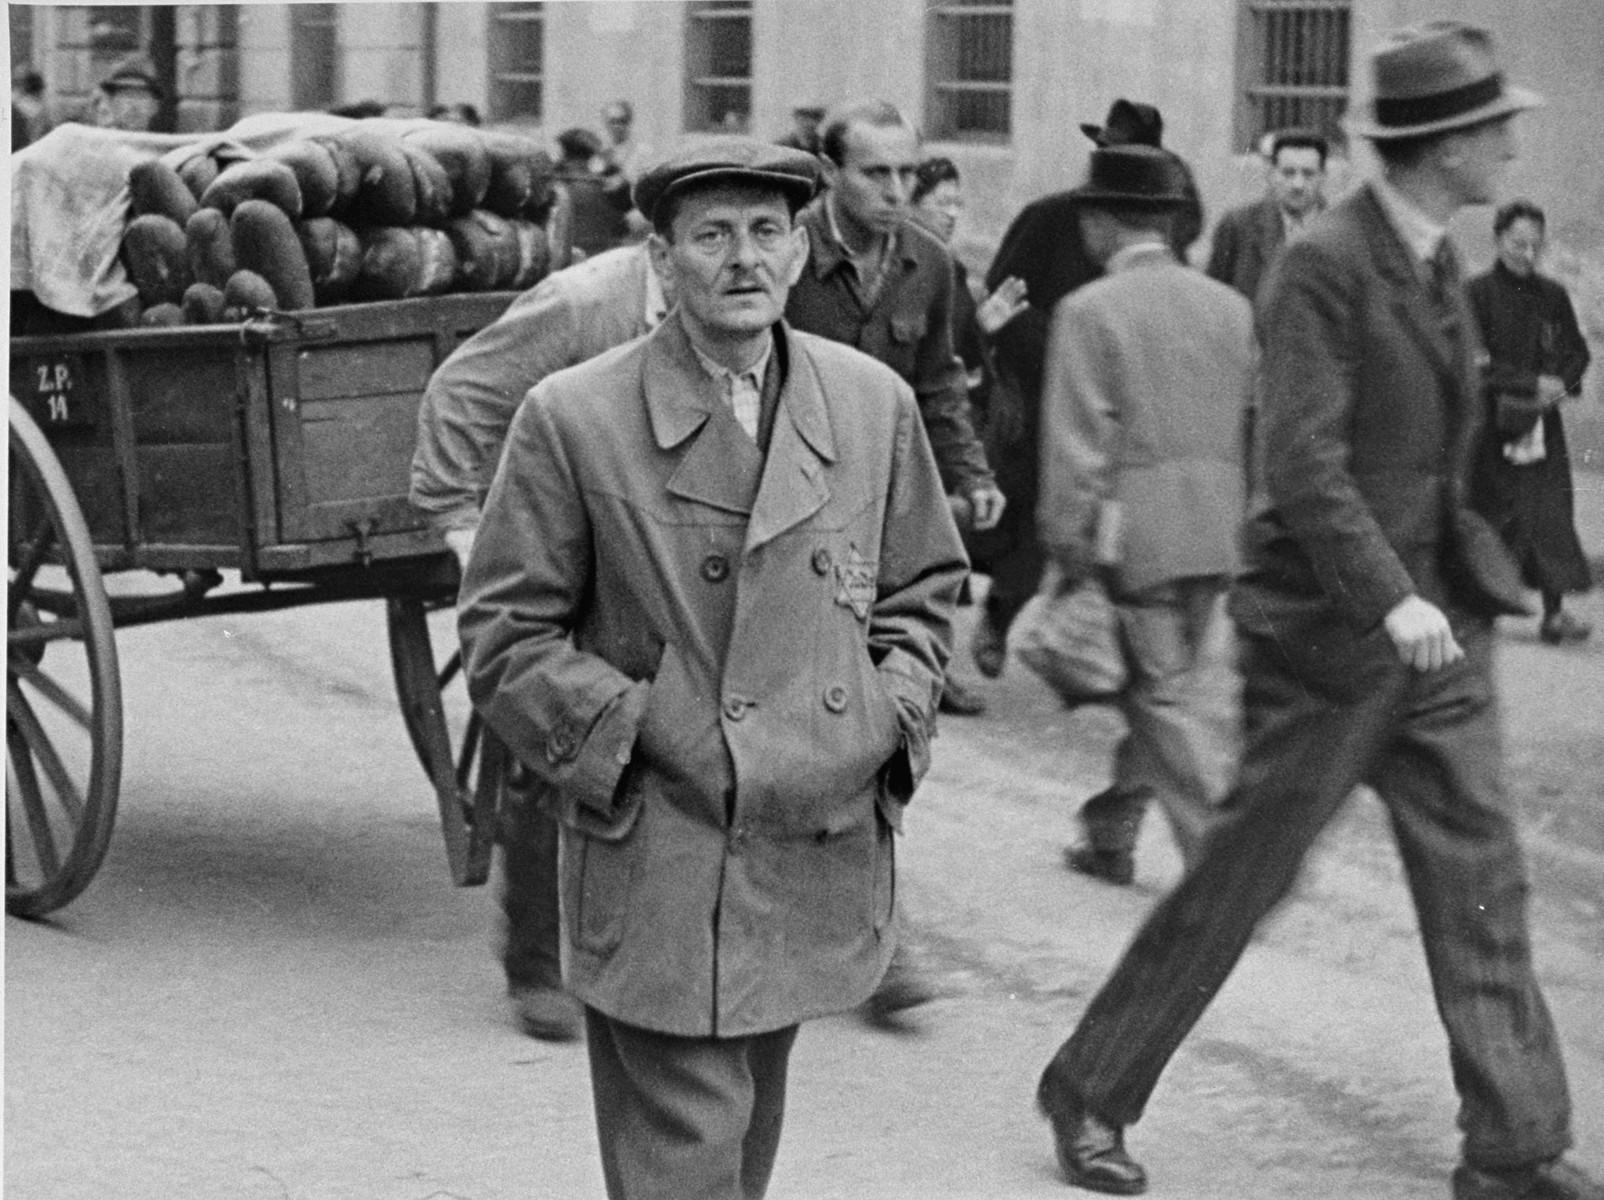 A Jew wearing a yellow star walks along a street in Theresienstadt just ahead of a man pulling a wagon of bread. [oversized photo]